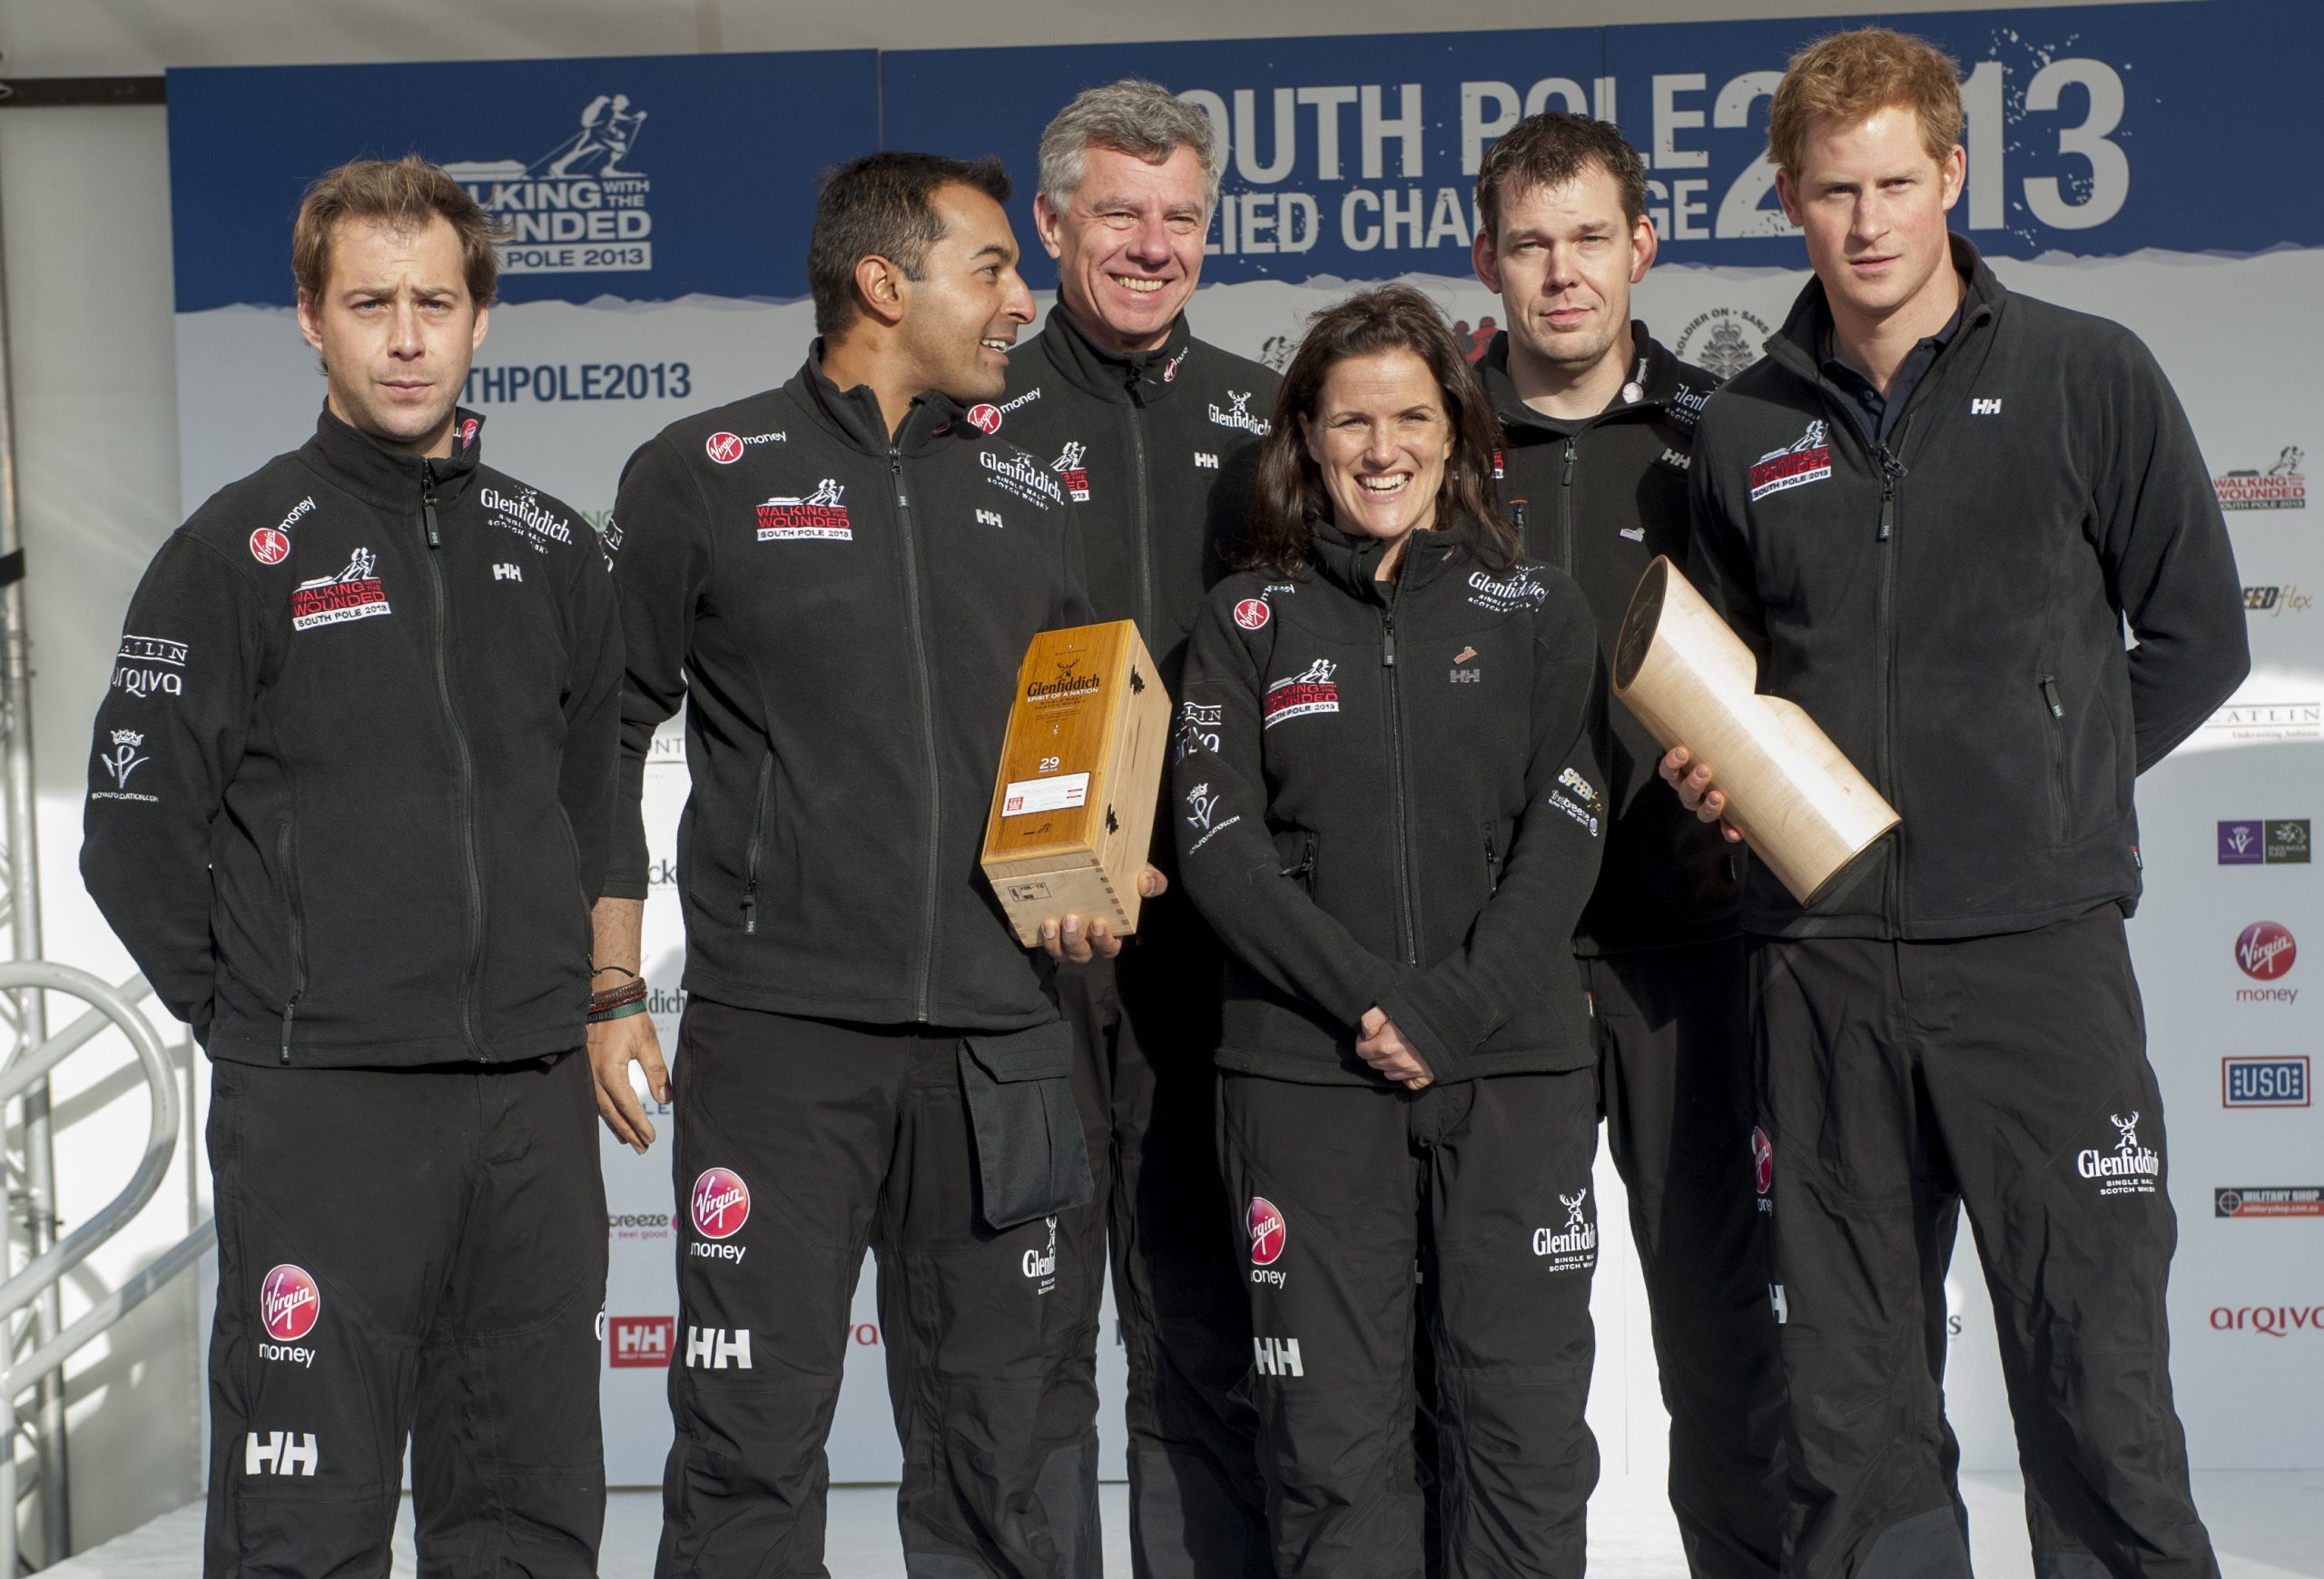 Prince Harry With Team U.k. 'walking With The Wounded' Soldiers At The Launch In Trafalgar Square For Their Race To The South Pole. Guy Disney Ibrar Ali Richard Eyre Kate Philip Duncan Slater. Picture David Parker 14.11.13.